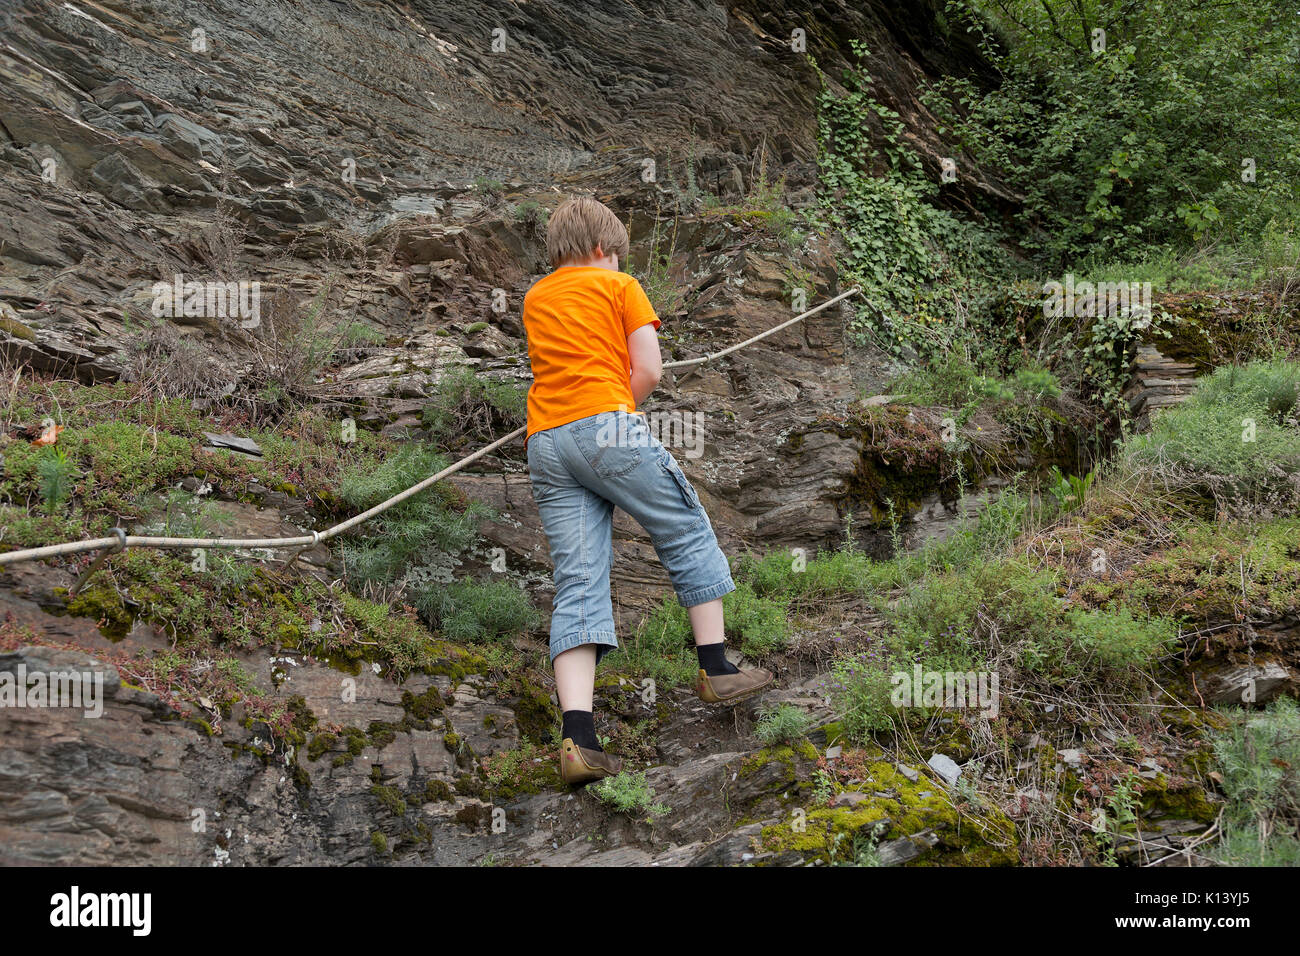 boy on fixed rope route, Uerzig, Moselle, Rhineland-Palatinate, Germany - Stock Image